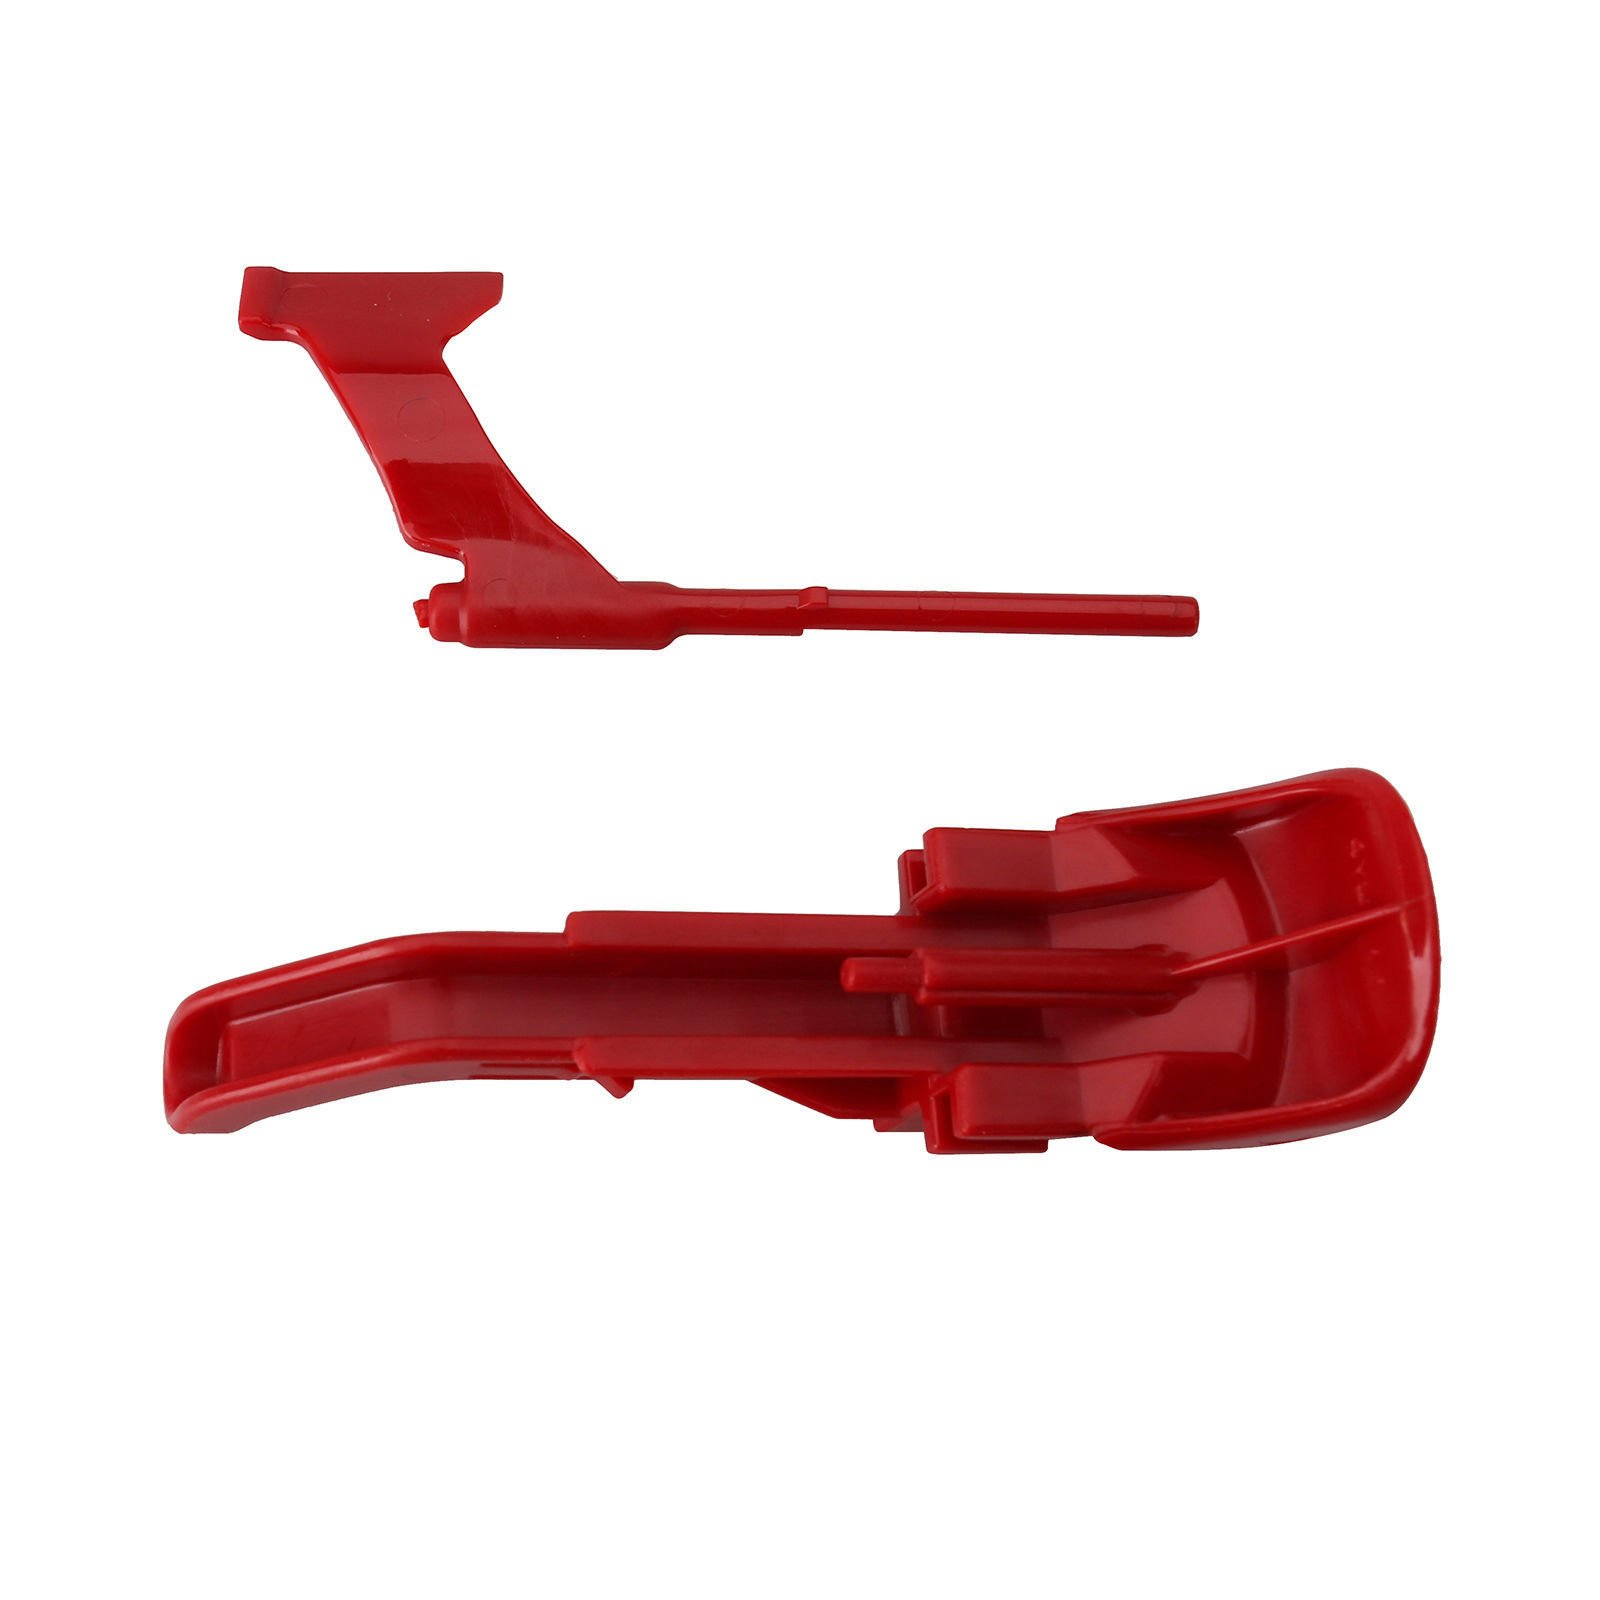 Vacuum Cyclone Red Canister Button Release Catch Clips Fits Dyson DC41, DC43 DC65-Generic Aftermarket Part